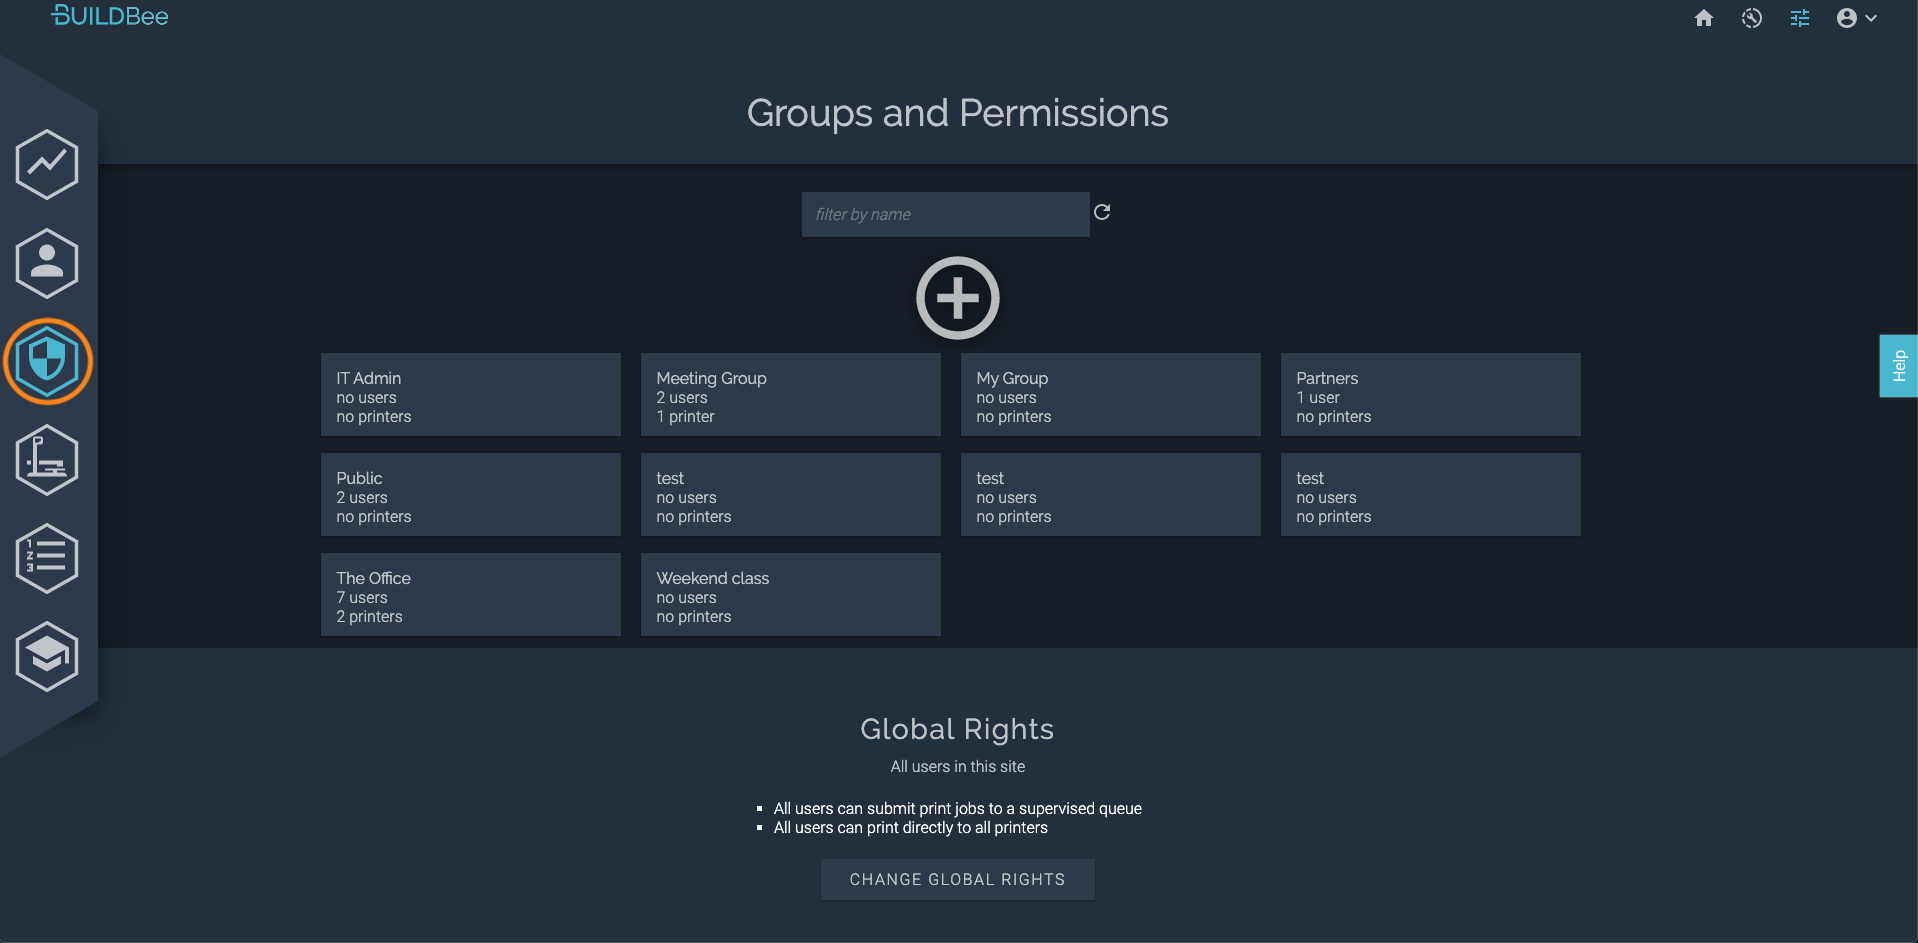 BuildBee groups and permissions